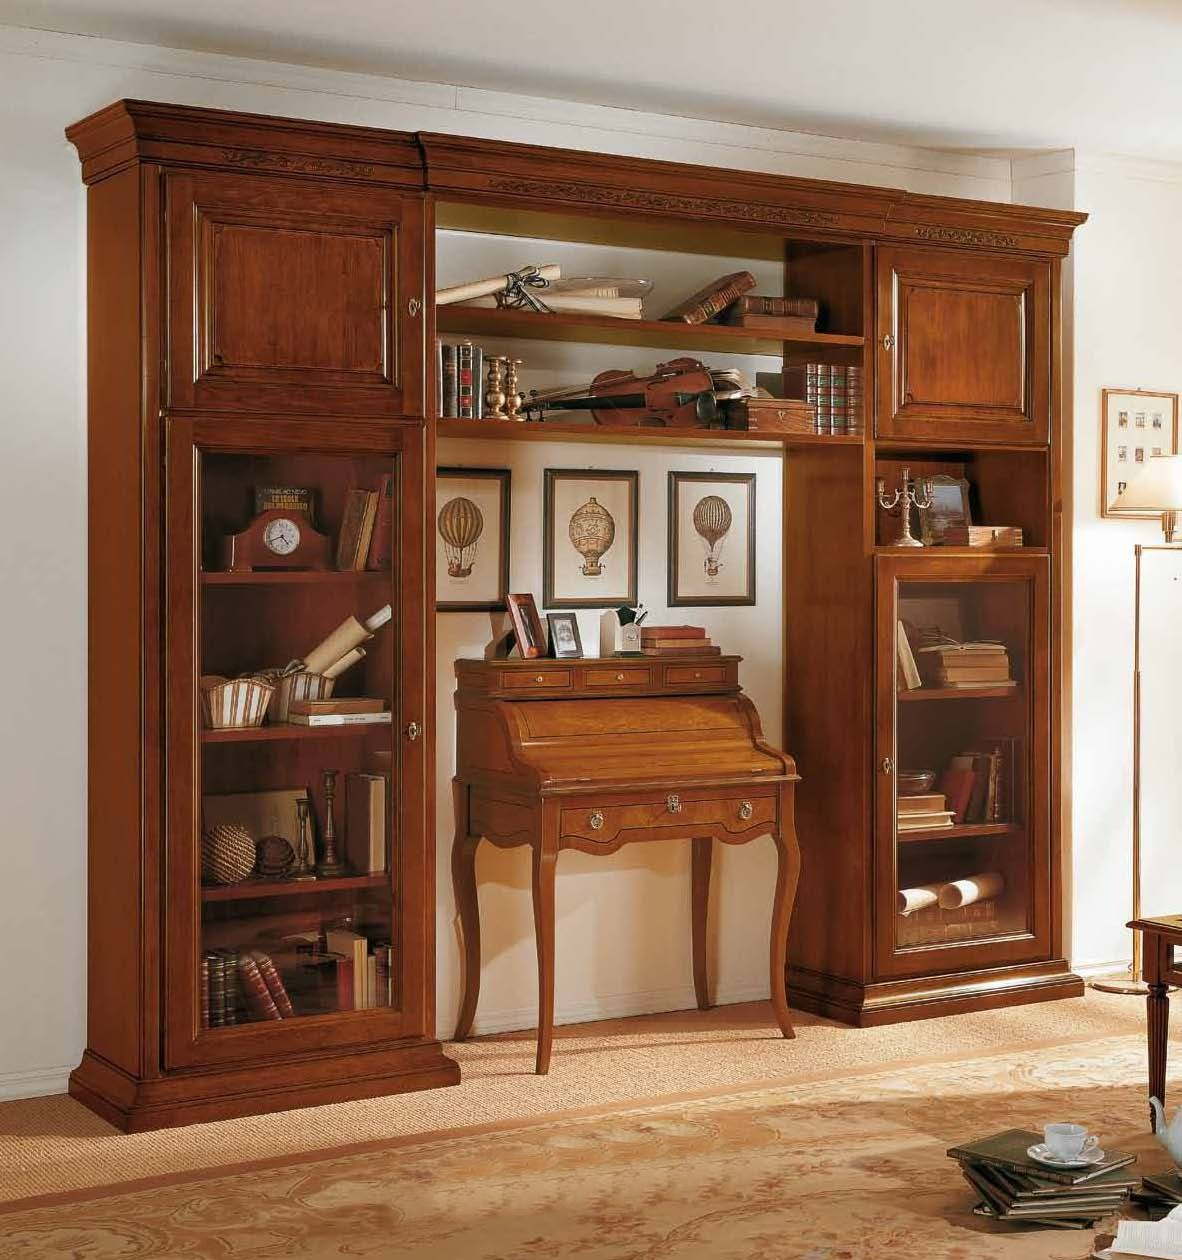 Modular System In A Classic Style And Wooden Frame Mirandola Export Luxury Furniture Mr